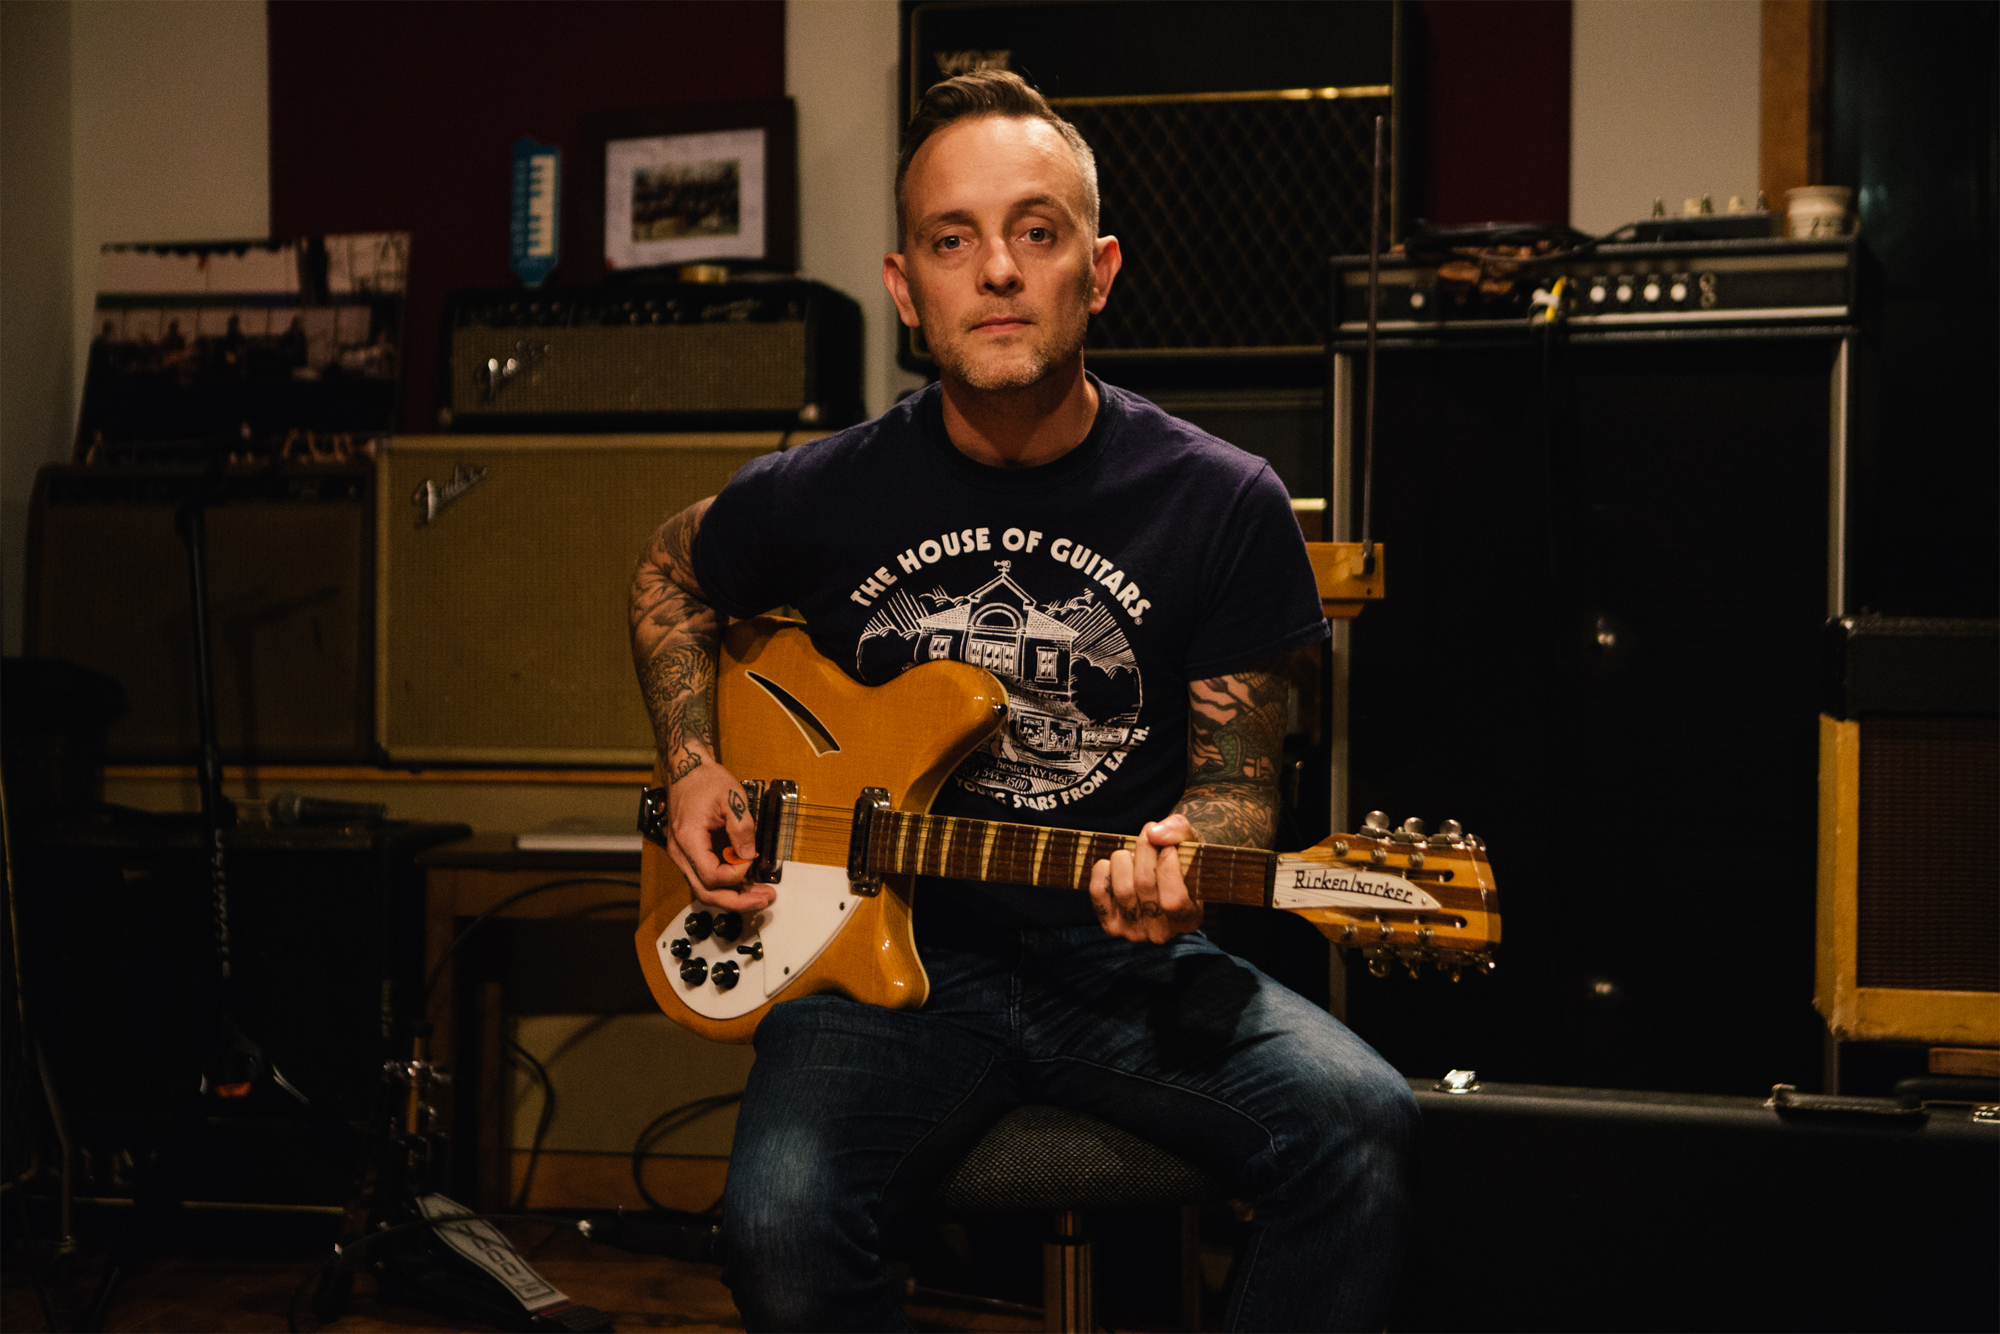 Philly folk punk singer songwriter Dave Hause plays at Kirby Center in Wilkes Barre on June 17